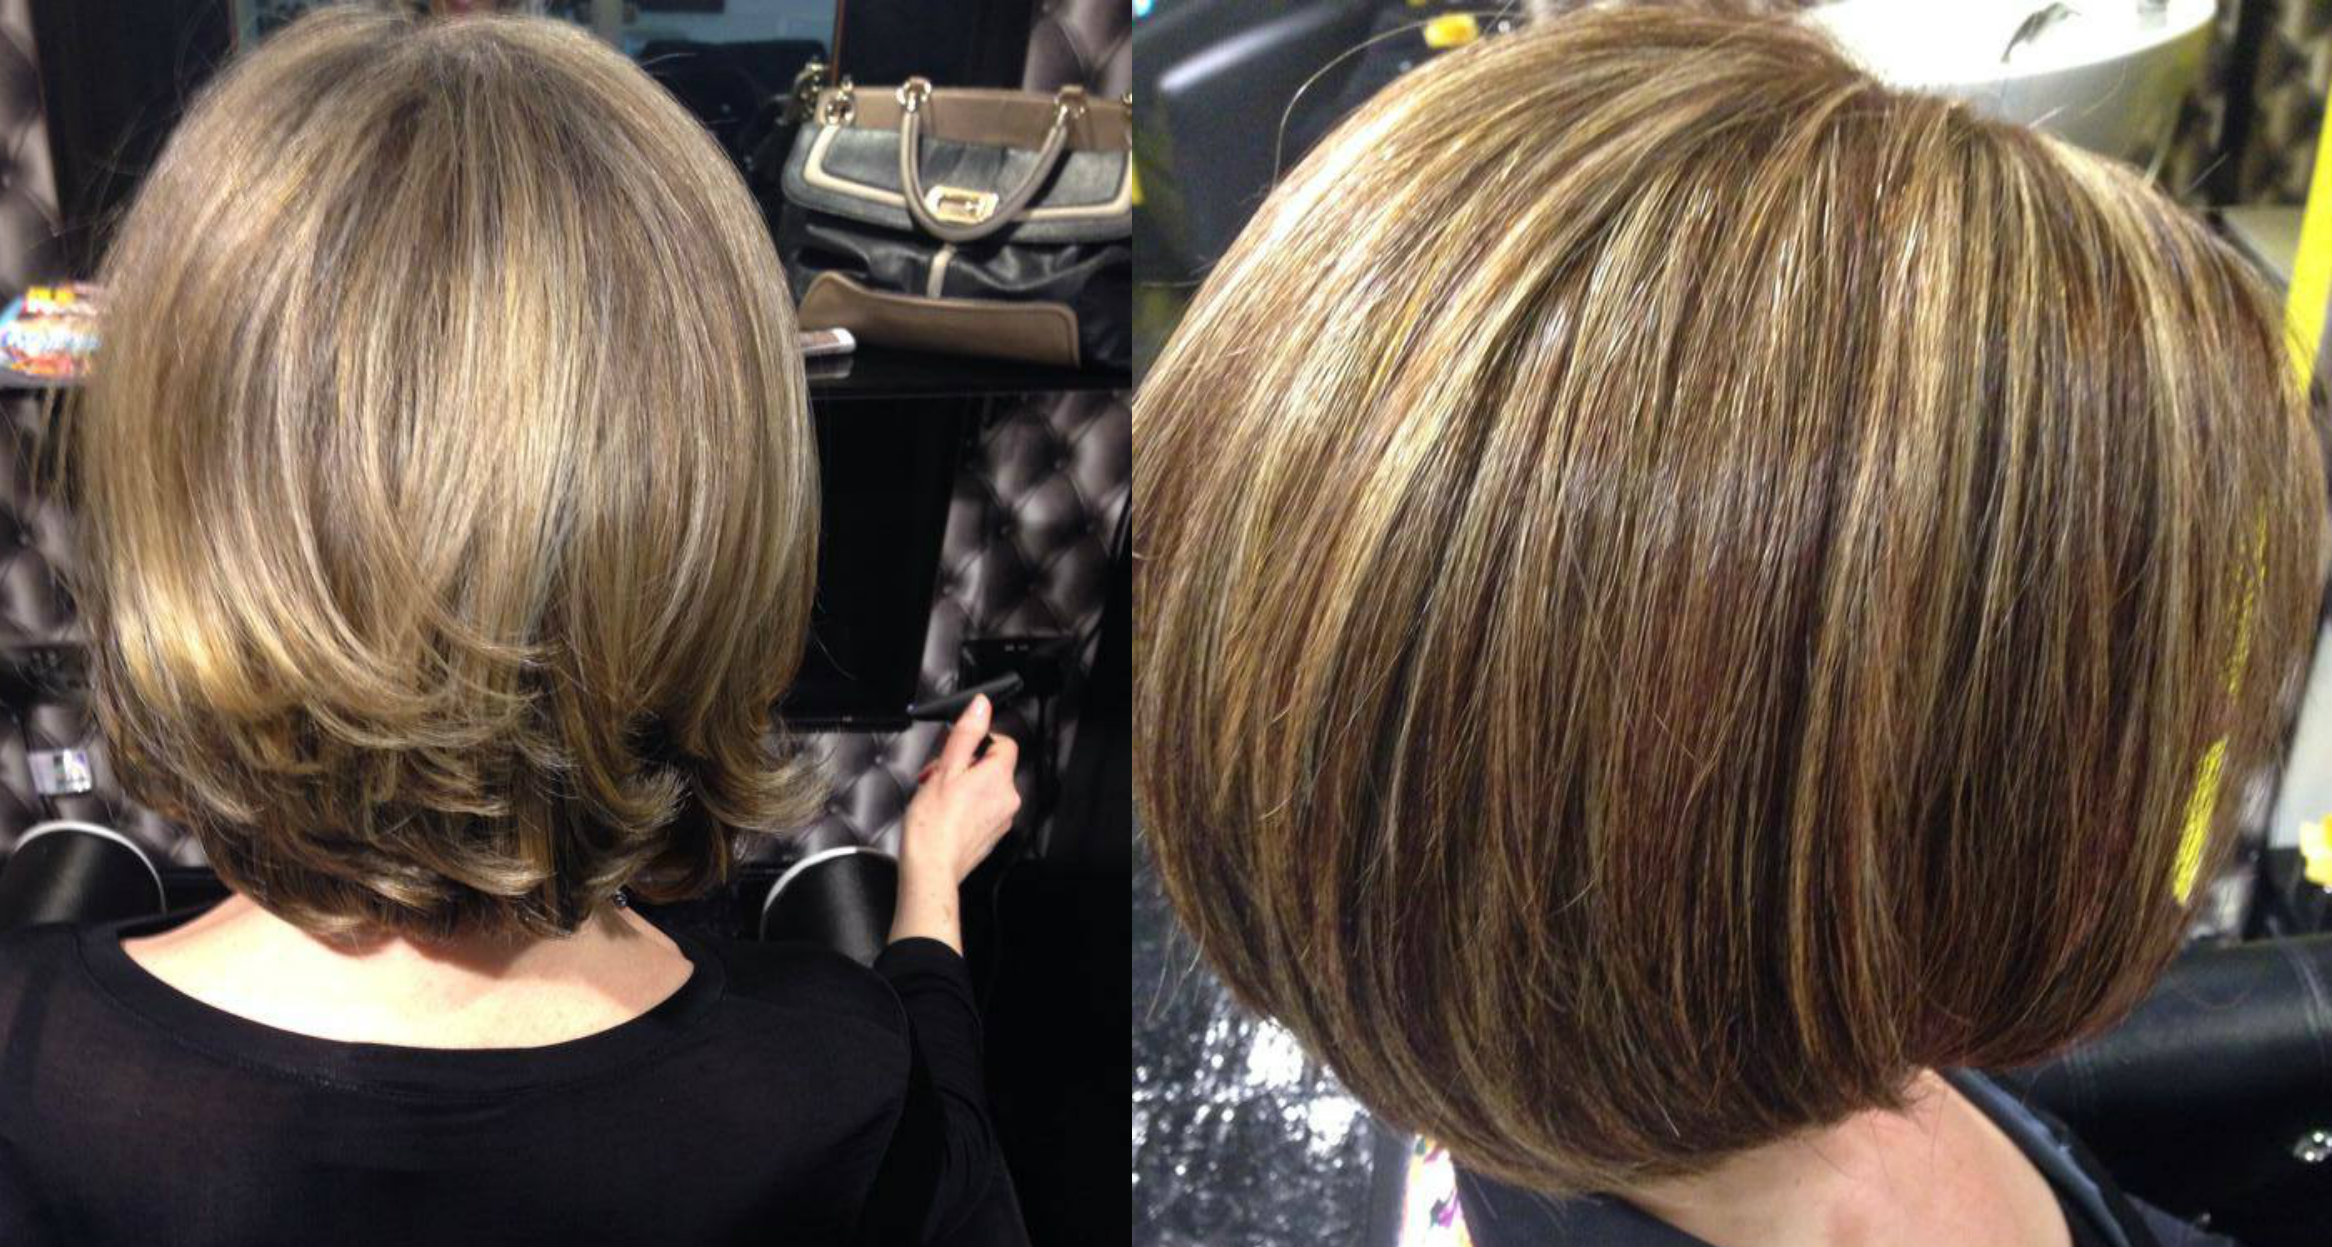 Pictures the hair hostess born to be blonde one of my fabulous beige toners gives this finishing effect after highlights toners are so important even on natural blondes pmusecretfo Image collections